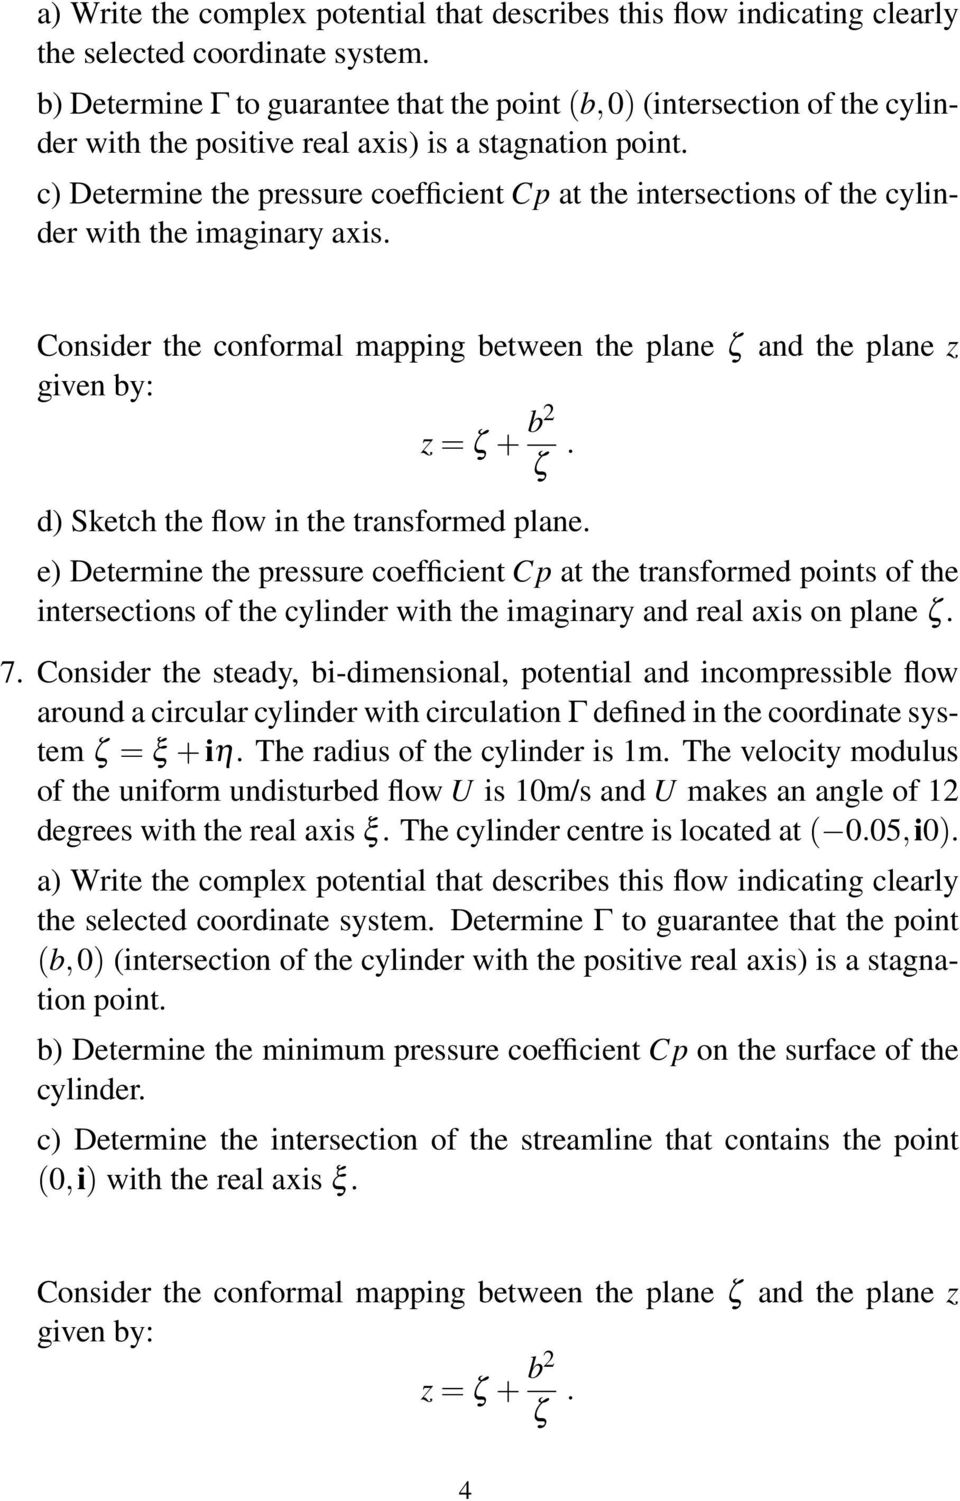 c) Determine the pressure coefficient Cp at the intersections of the cylinder with the imaginary axis.